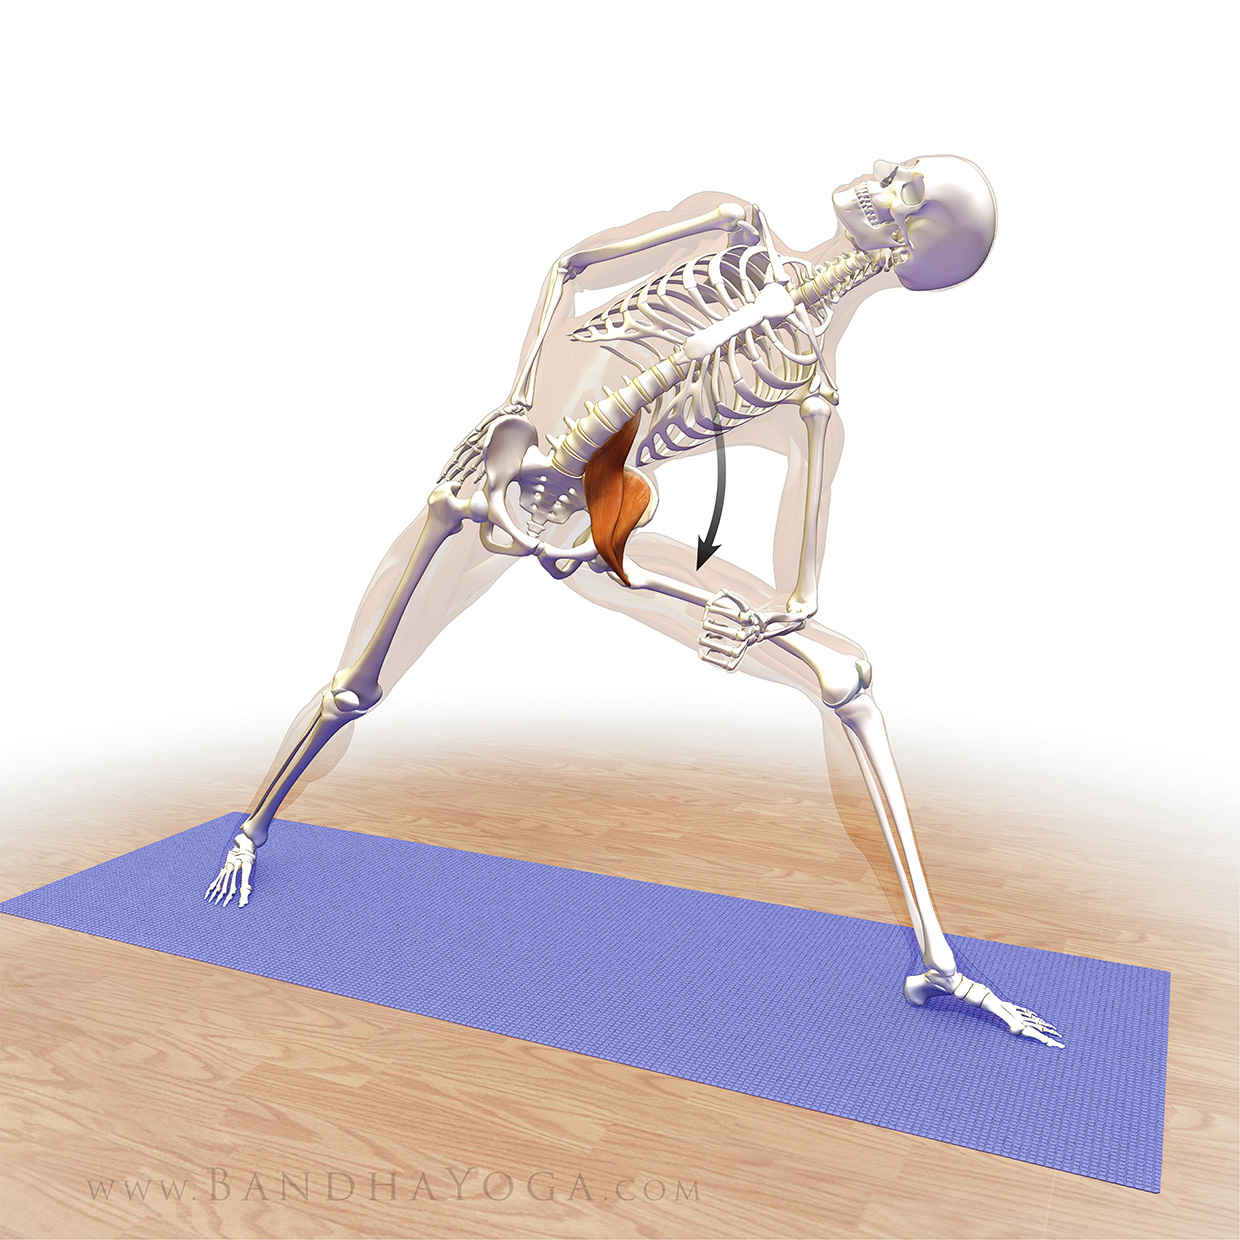 An anatomical illustration of activating your psoas and iliacus in Triangle Pose (Trikonasana) in yoga